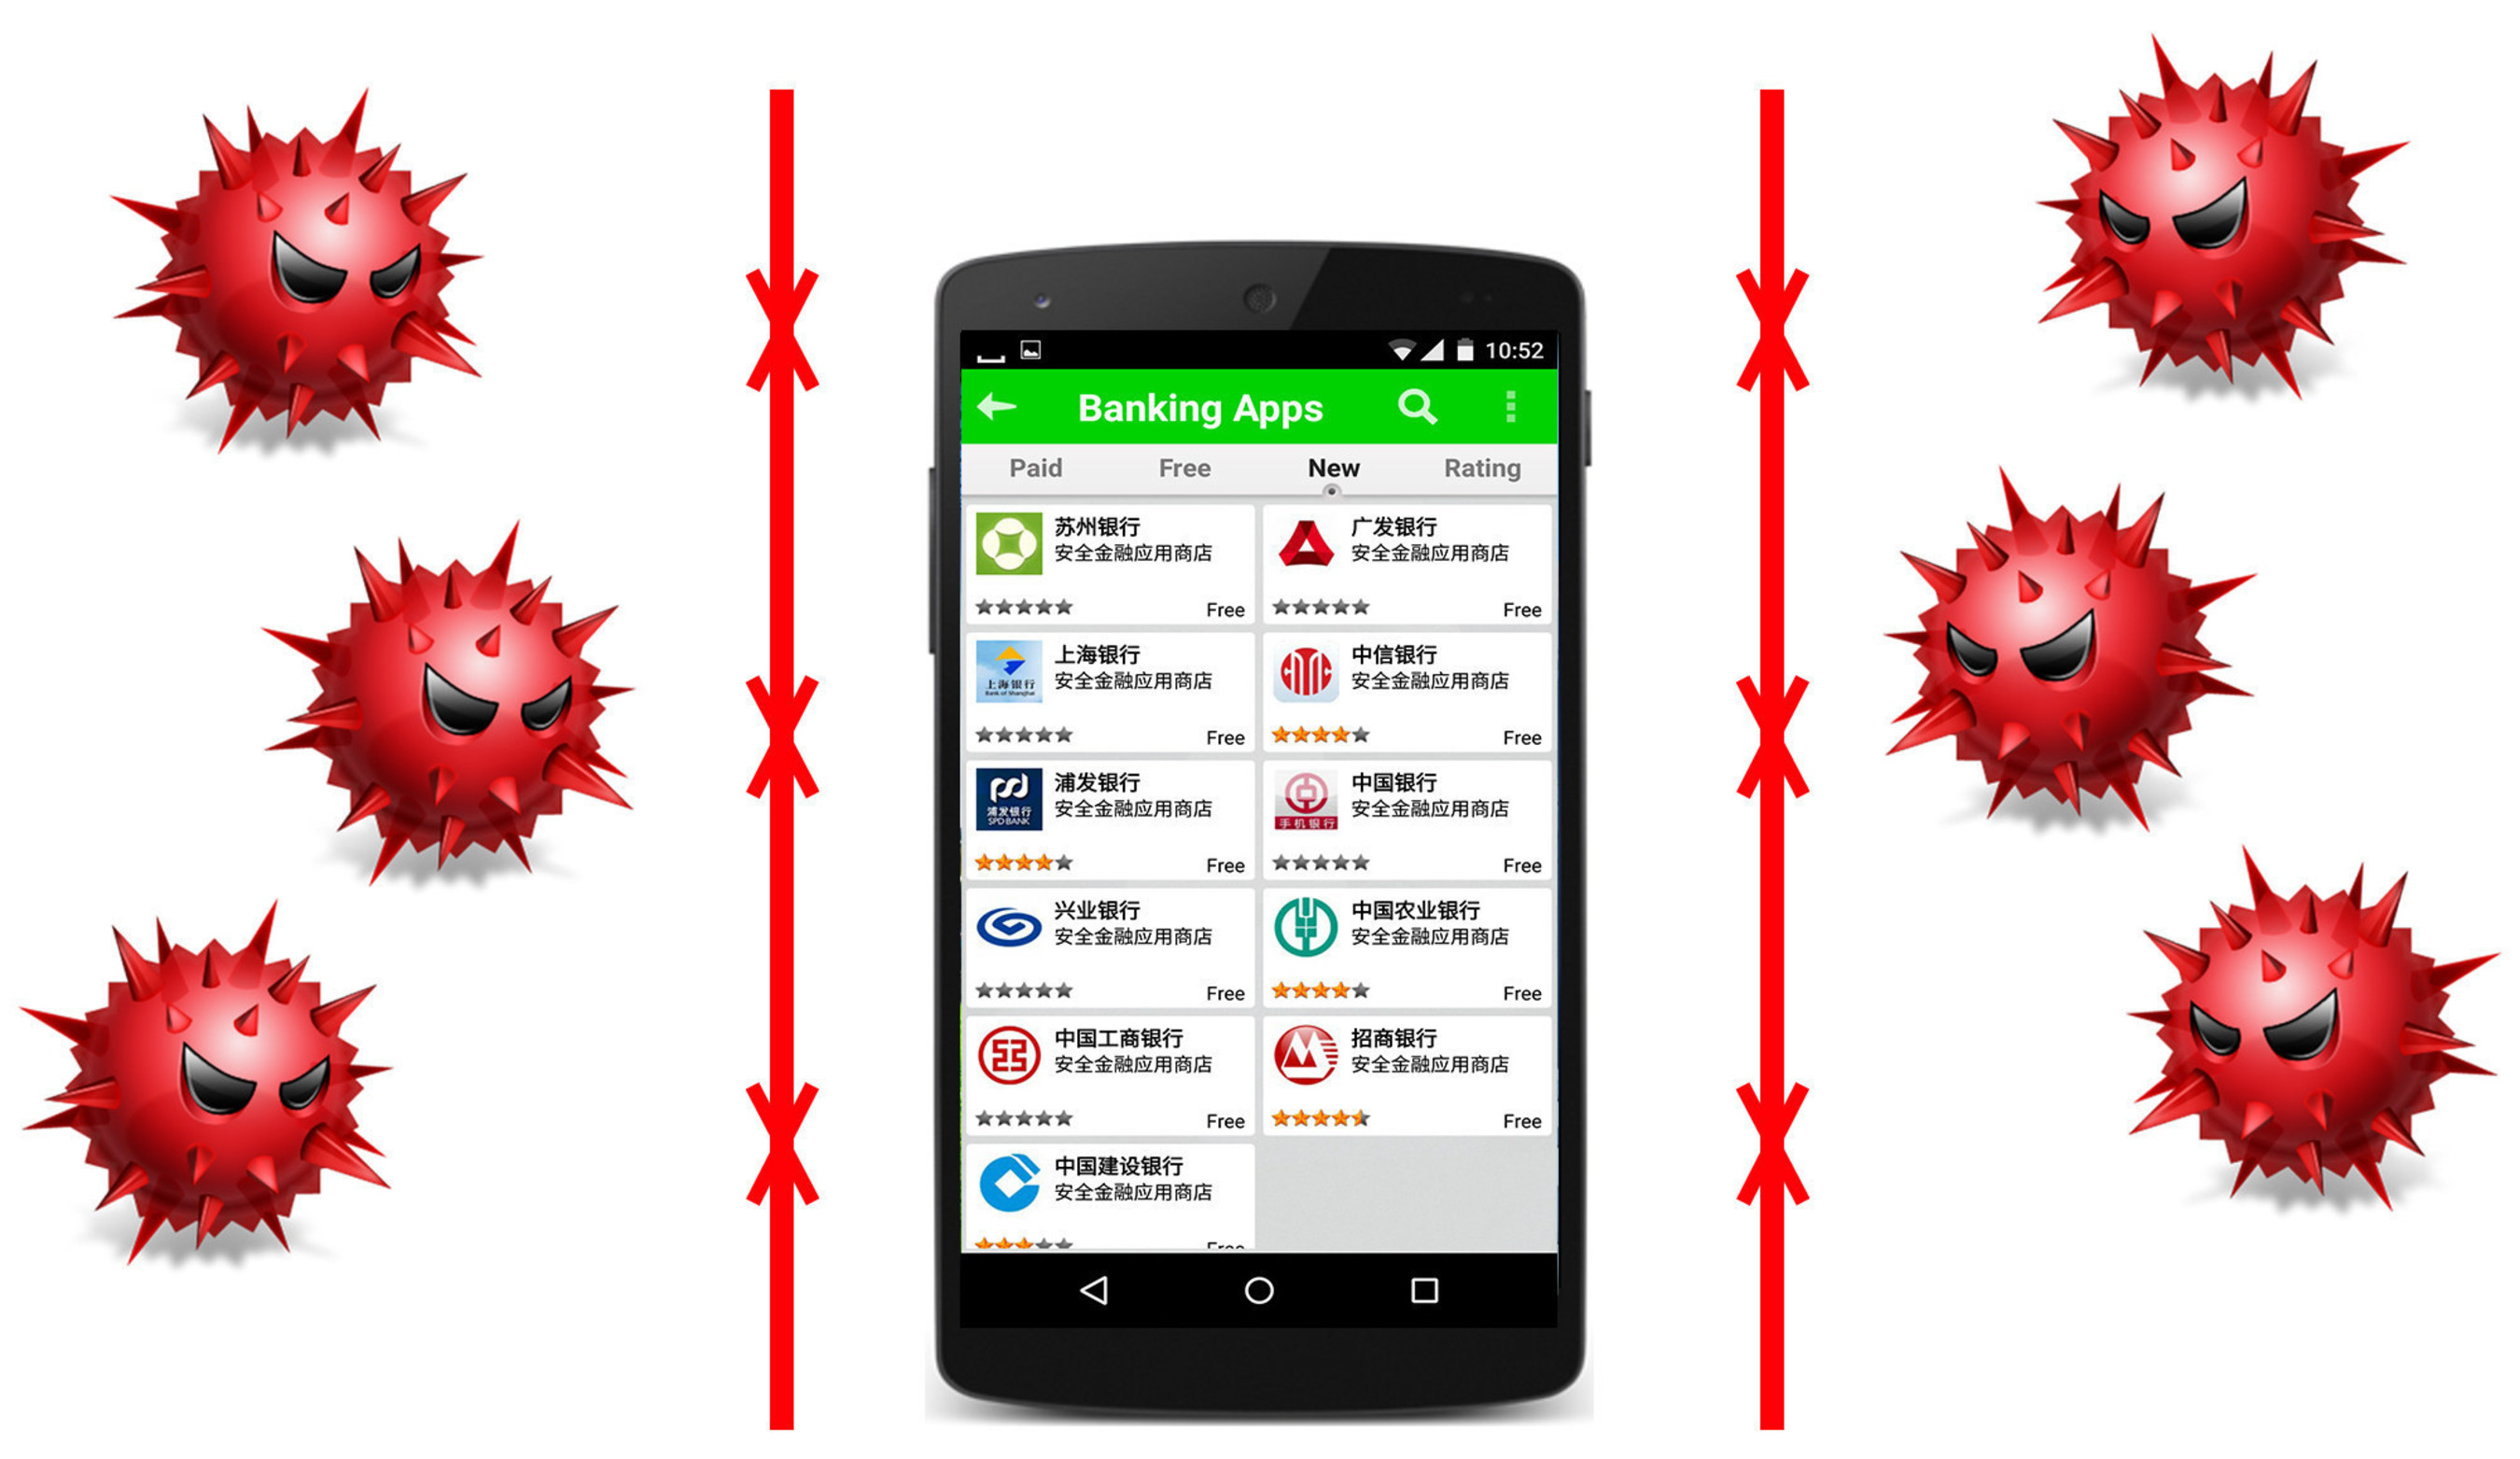 Graphite Software Finds Malware in 32% of Mobile Banking and Payment Apps in China